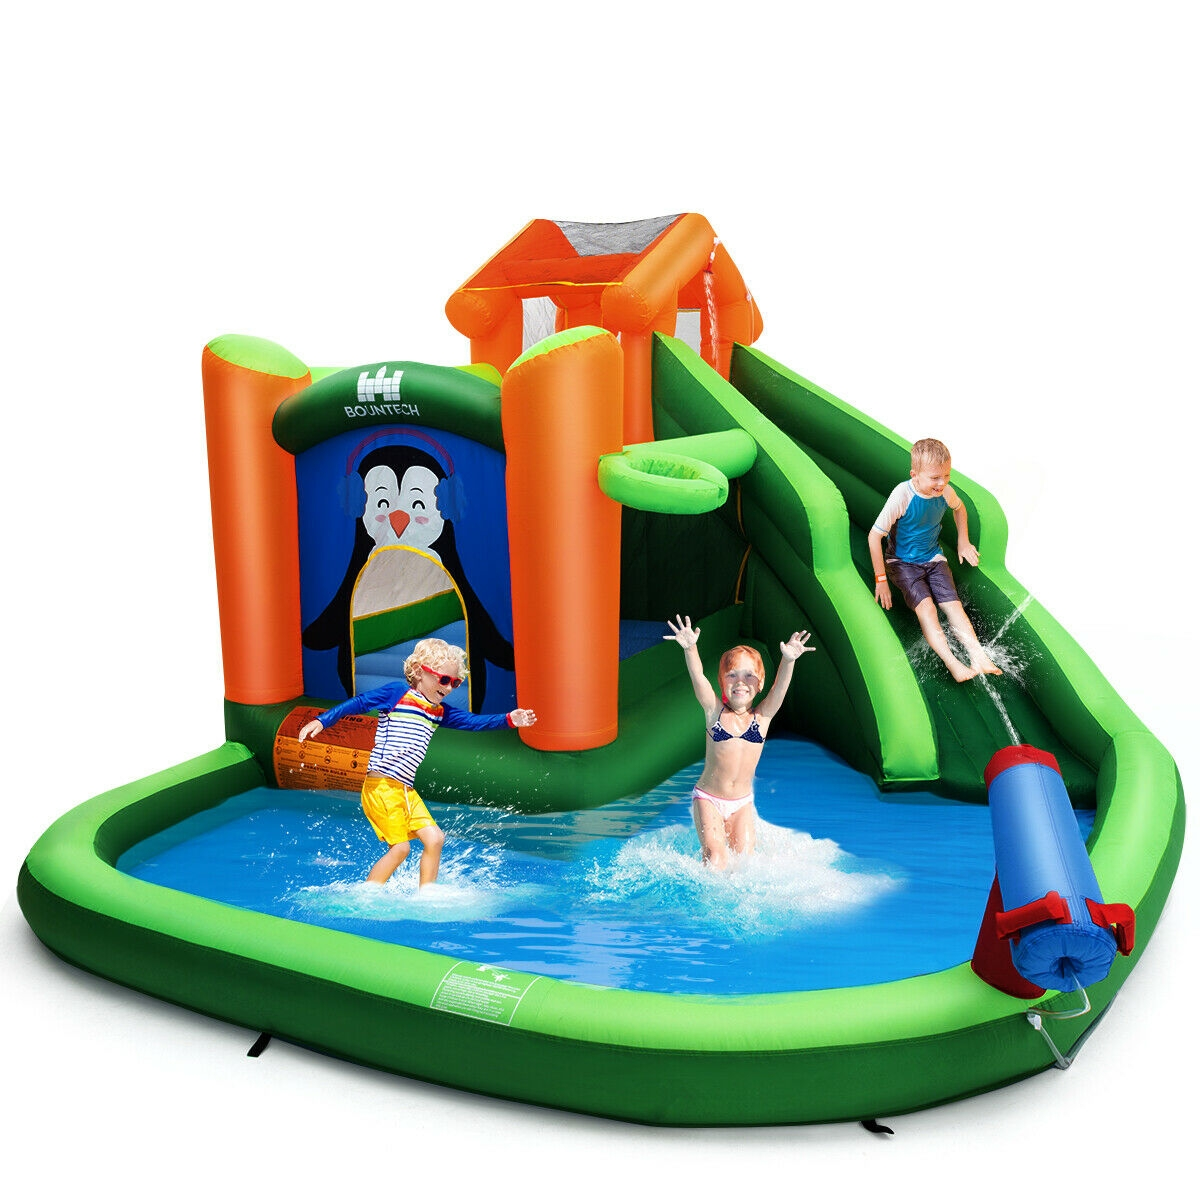 Inflatable Water Park Bouncer with Climbing Wall Splash Pool Water Cannon